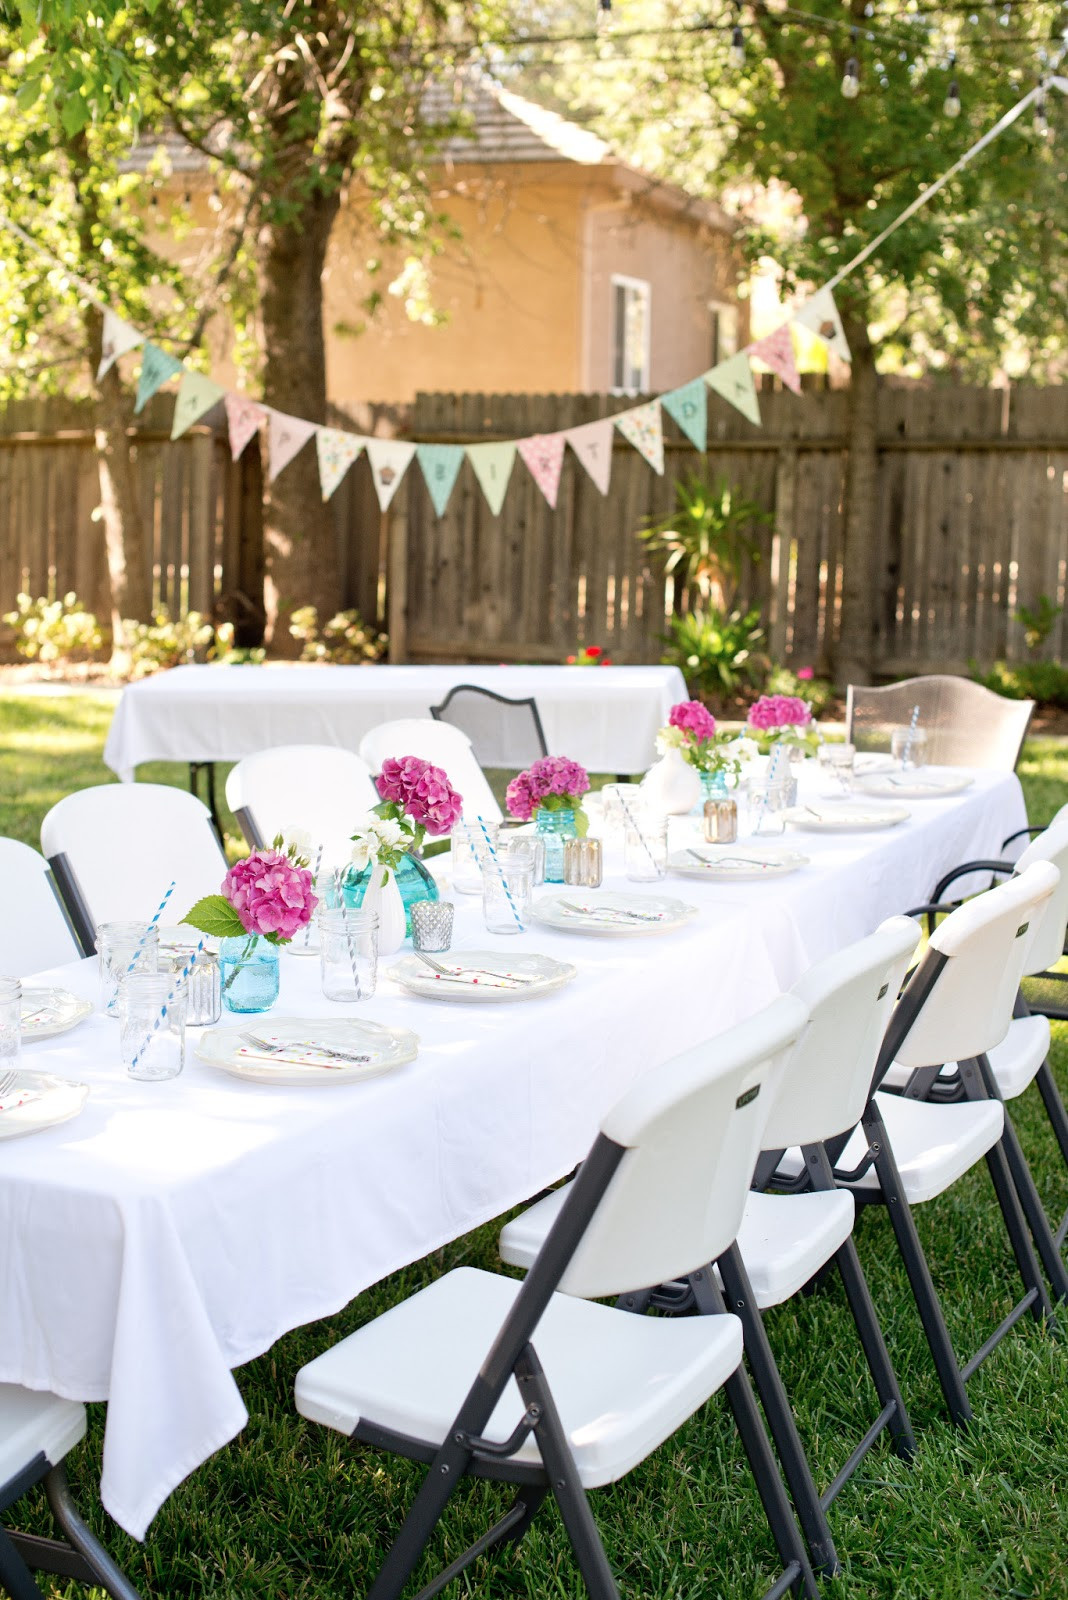 Backyard Party Decor Ideas  Backyard Party Decorations For Unfor table Moments